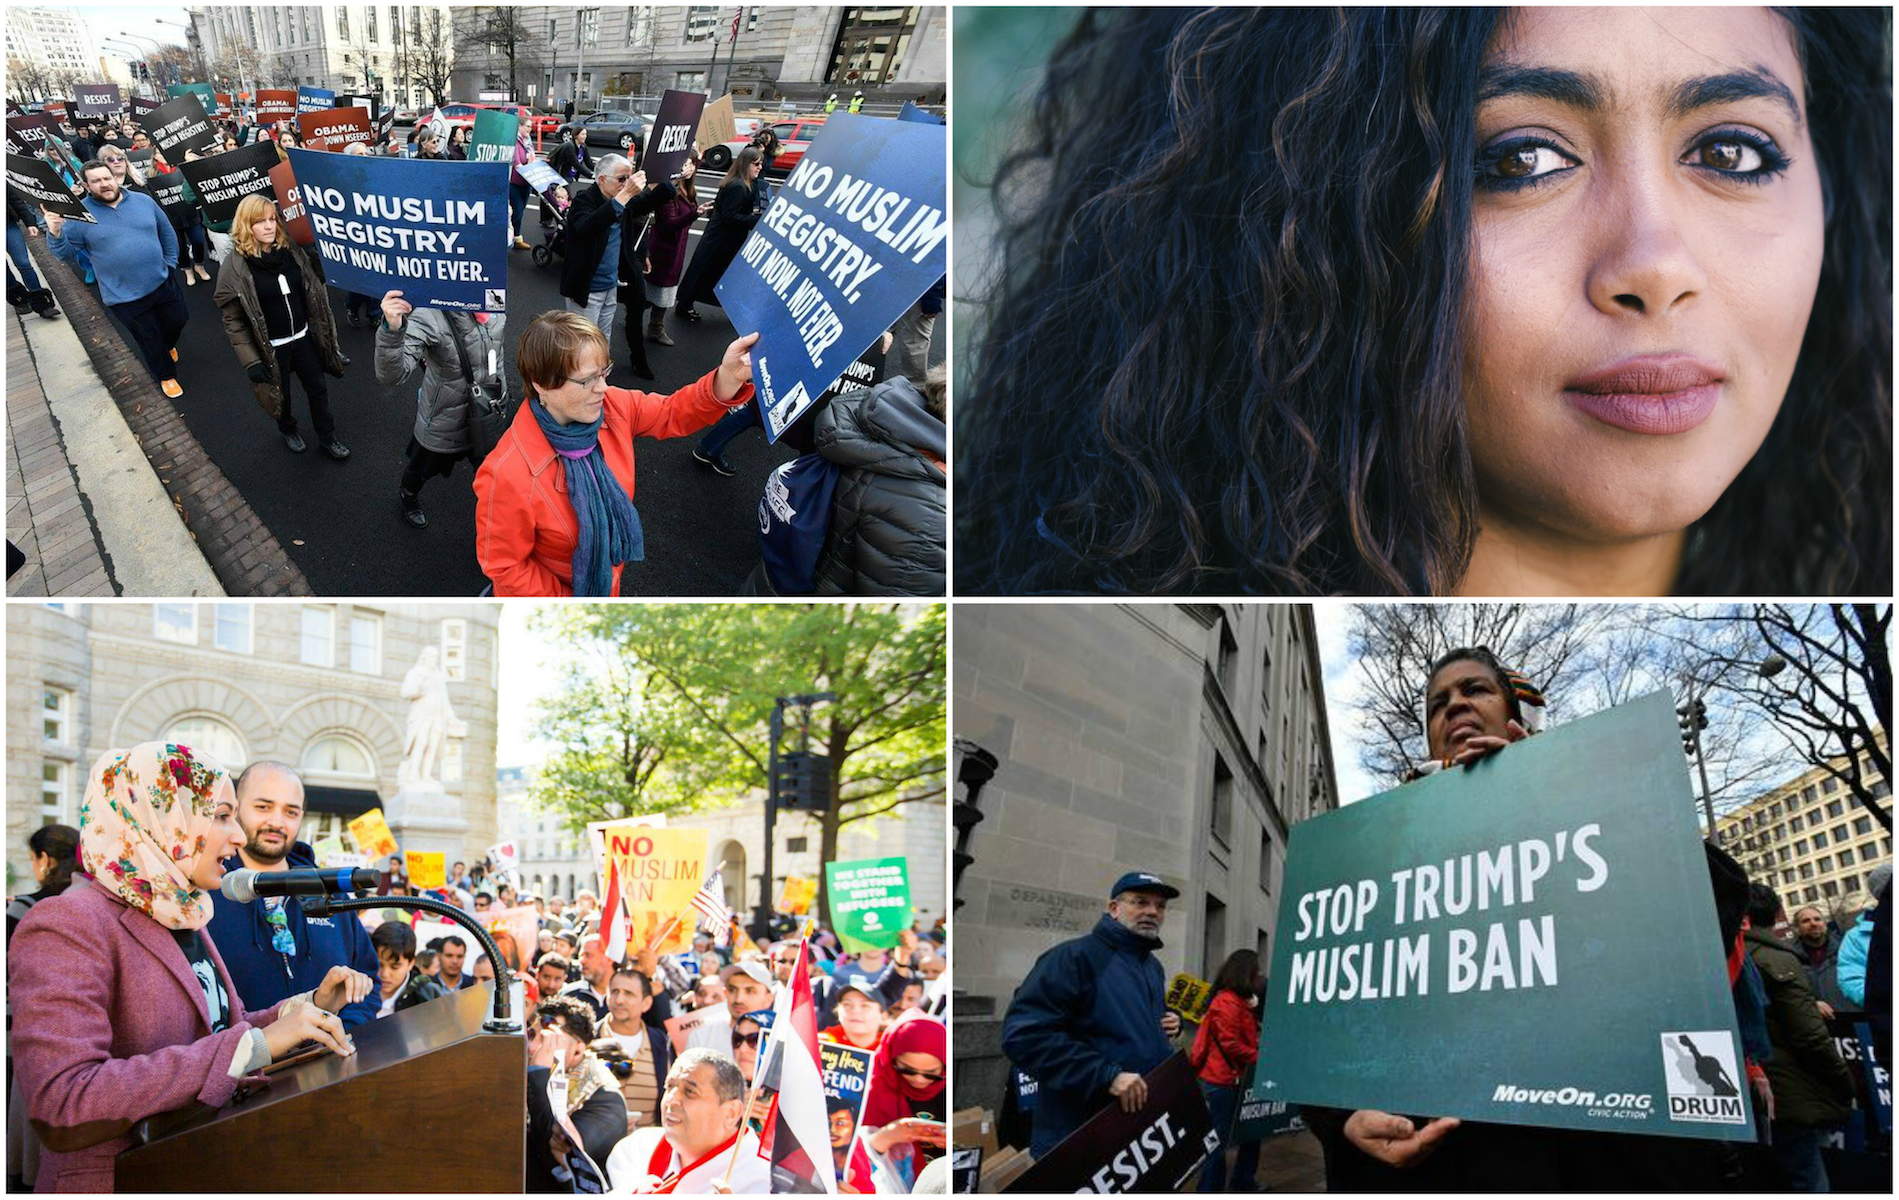 Whether it's telling our story to millions of viewers or thousands of us marching through Washington, D.C., we're resisting Trump's Muslim Ban.